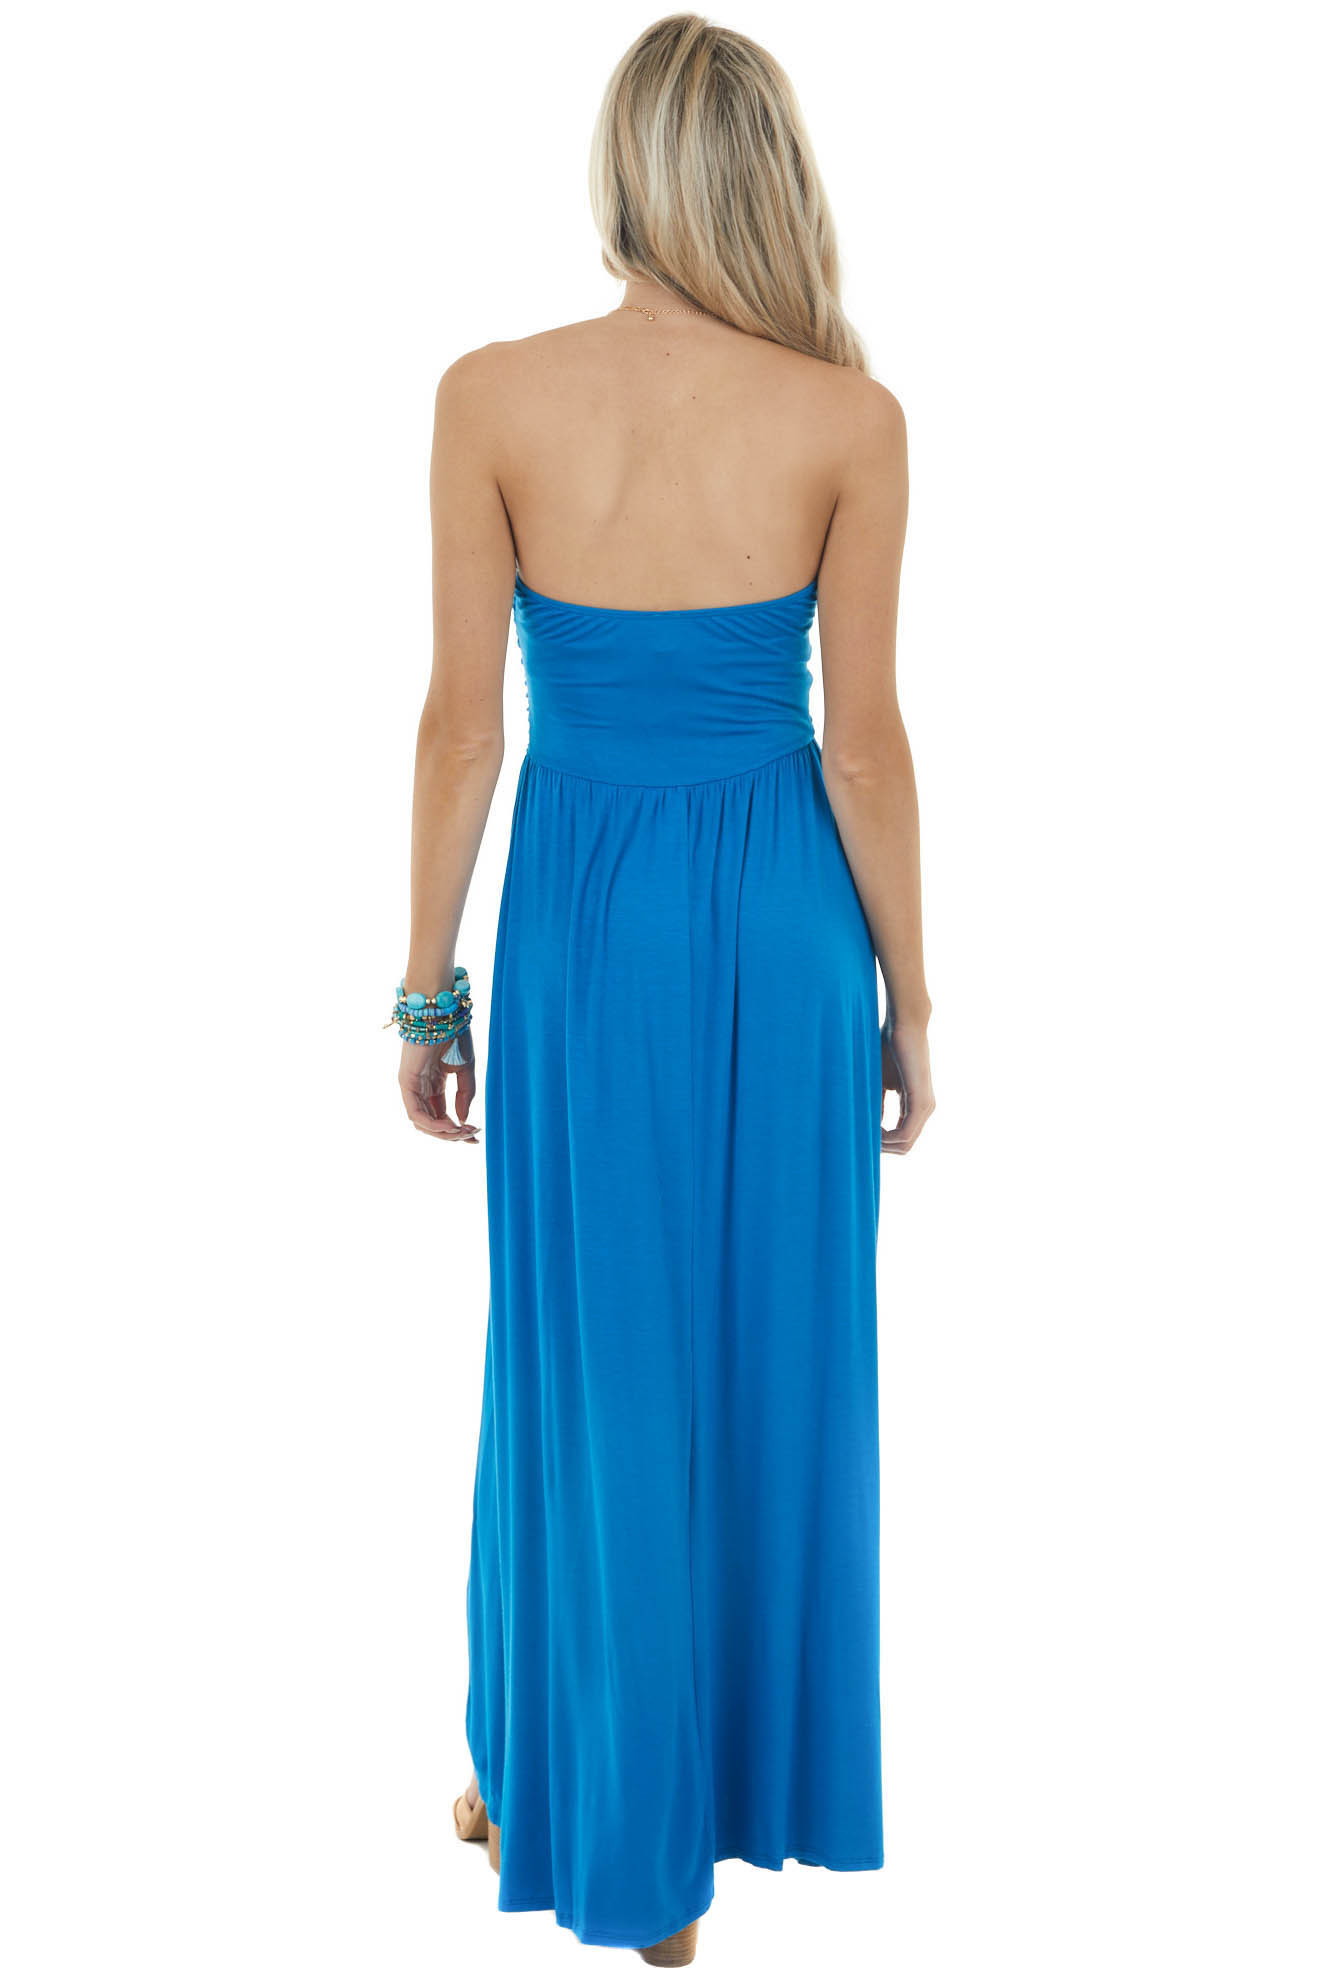 Royal Blue Strapless Maxi Dress with Ruching Details